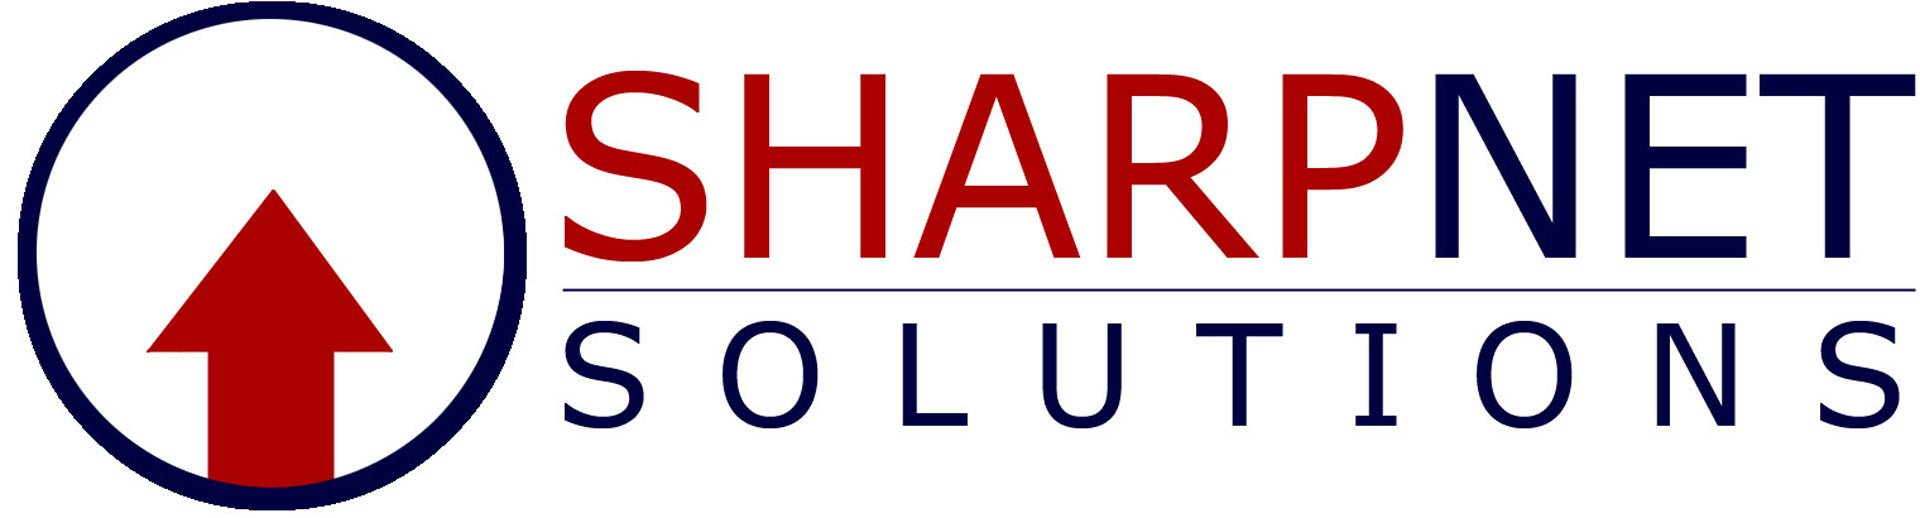 Best Real Estate SEO Company Logo: SharpNet